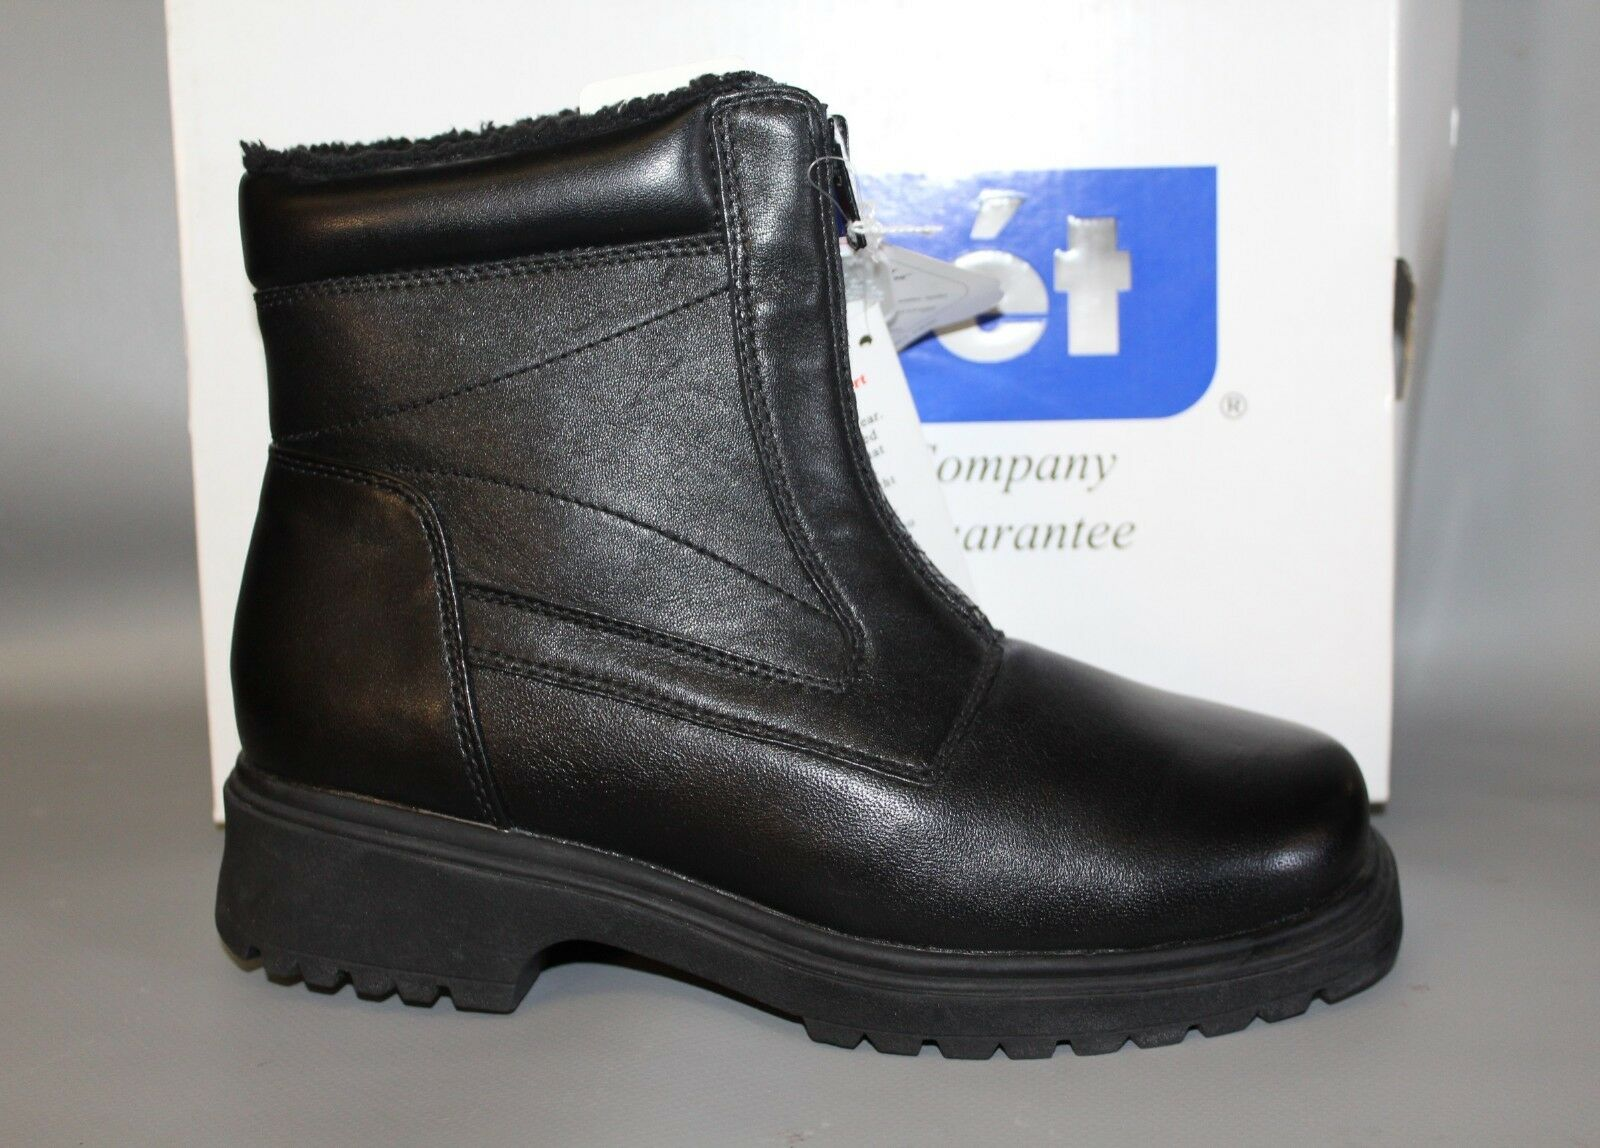 NEW Women's Propét WB101 Waterproof Black Leather Warm Winter Snow Boots